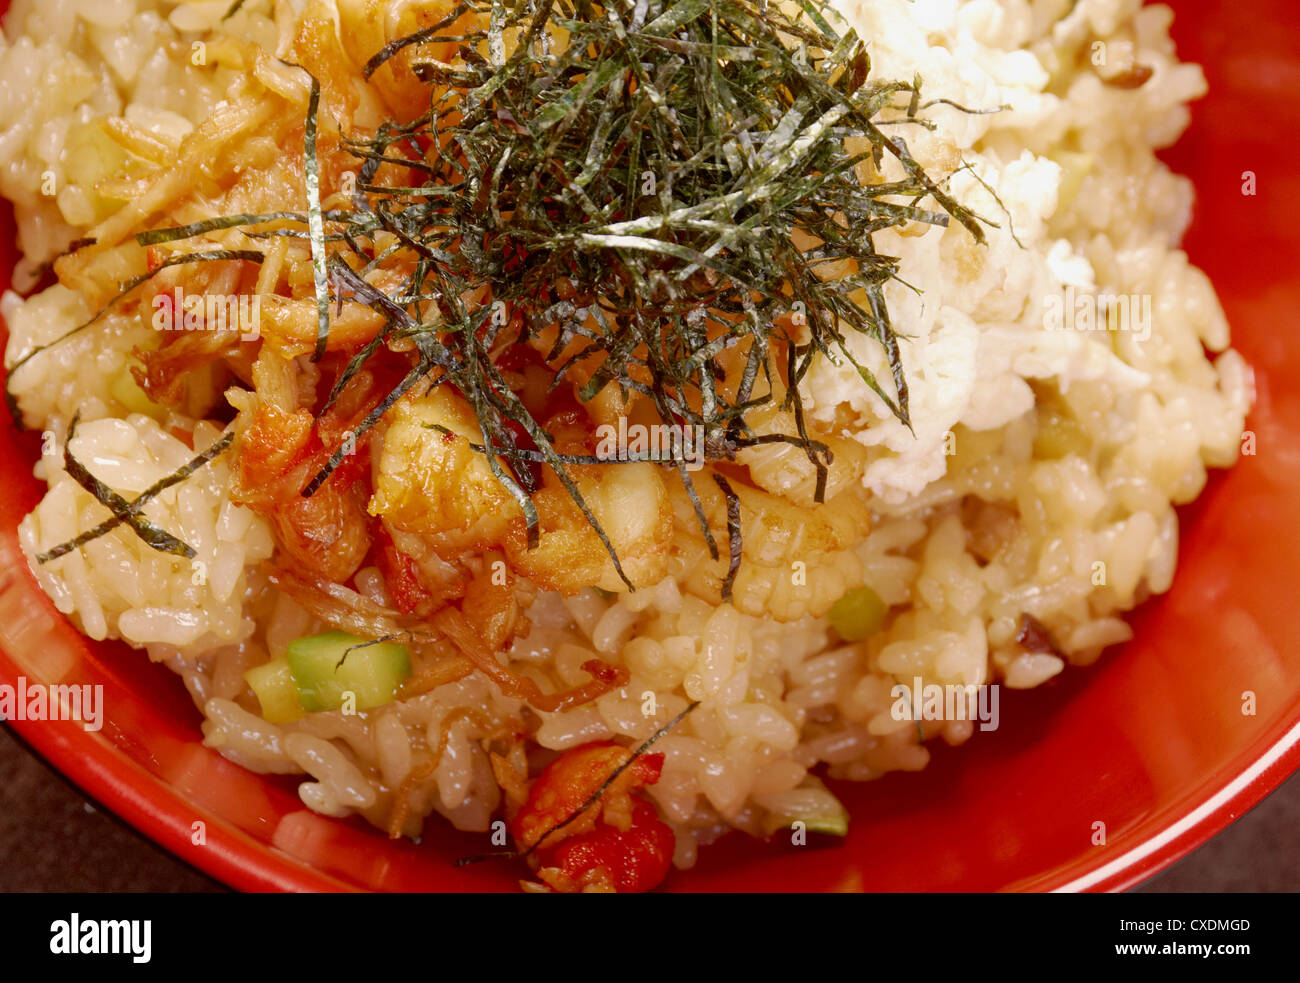 Seafood tyahan or rice with seafood 86